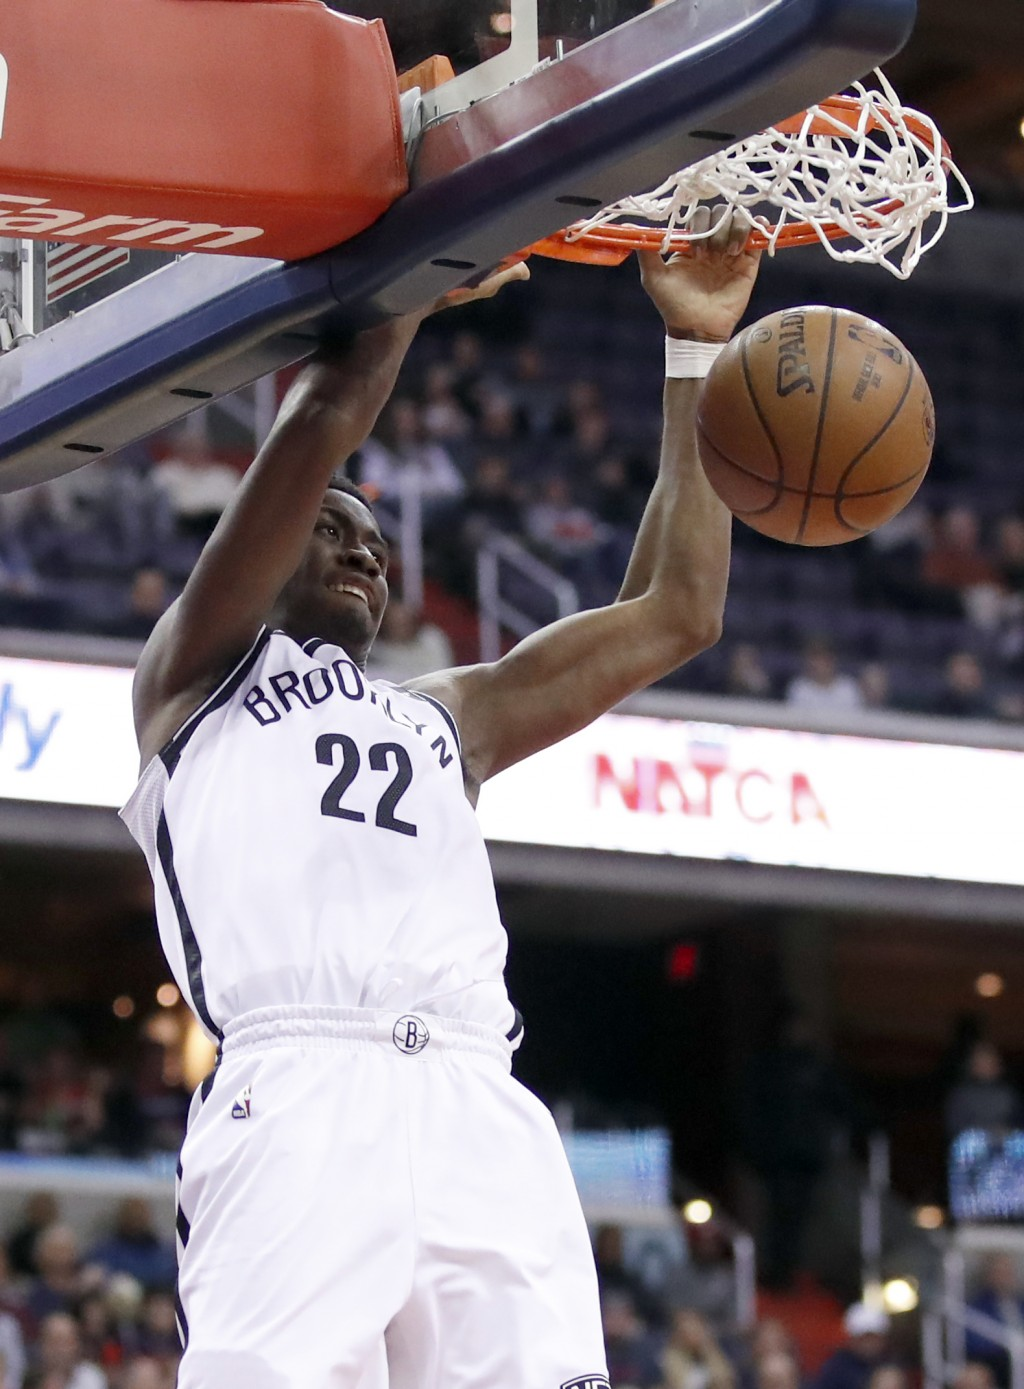 Brooklyn Nets guard Caris LeVert (22) dunks the ball during the first half of an NBA basketball game against the Washington Wizards, Saturday, Jan. 13